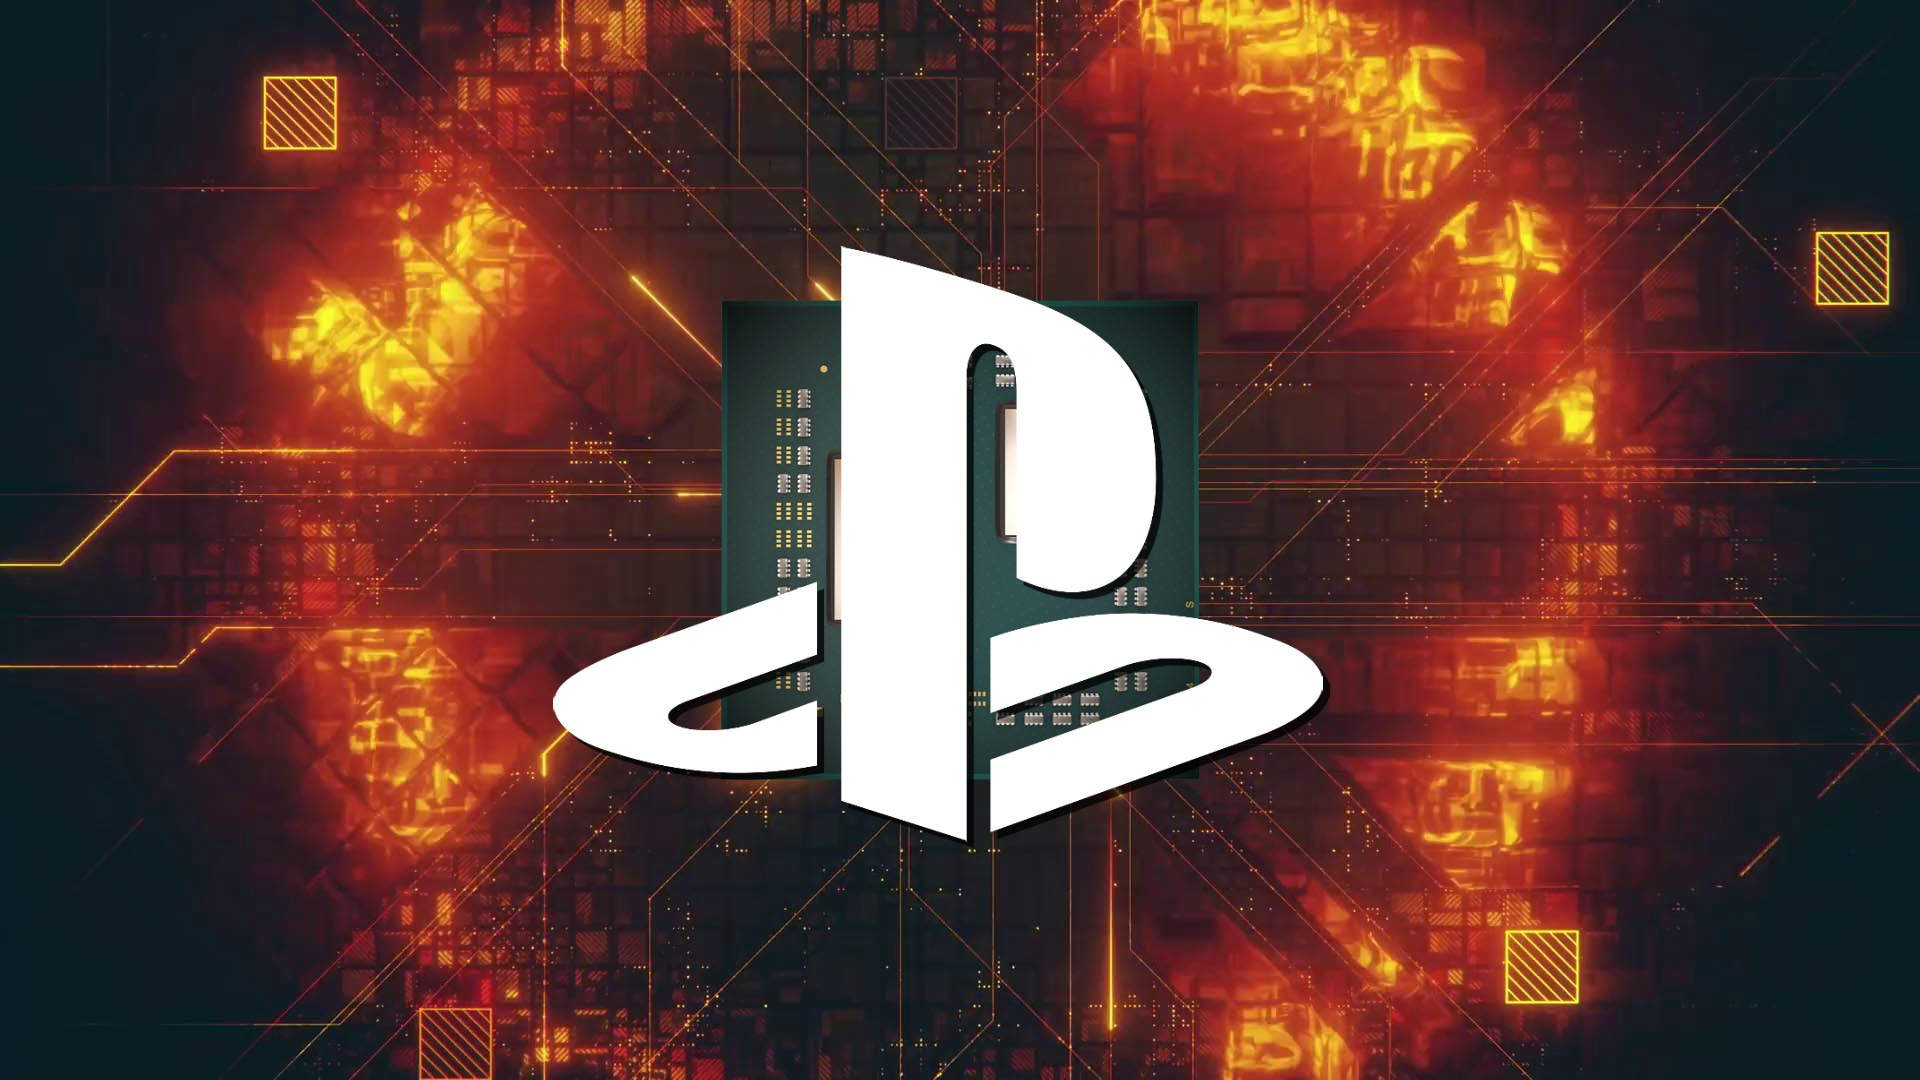 PlayStation 5 games showcase set for June 4